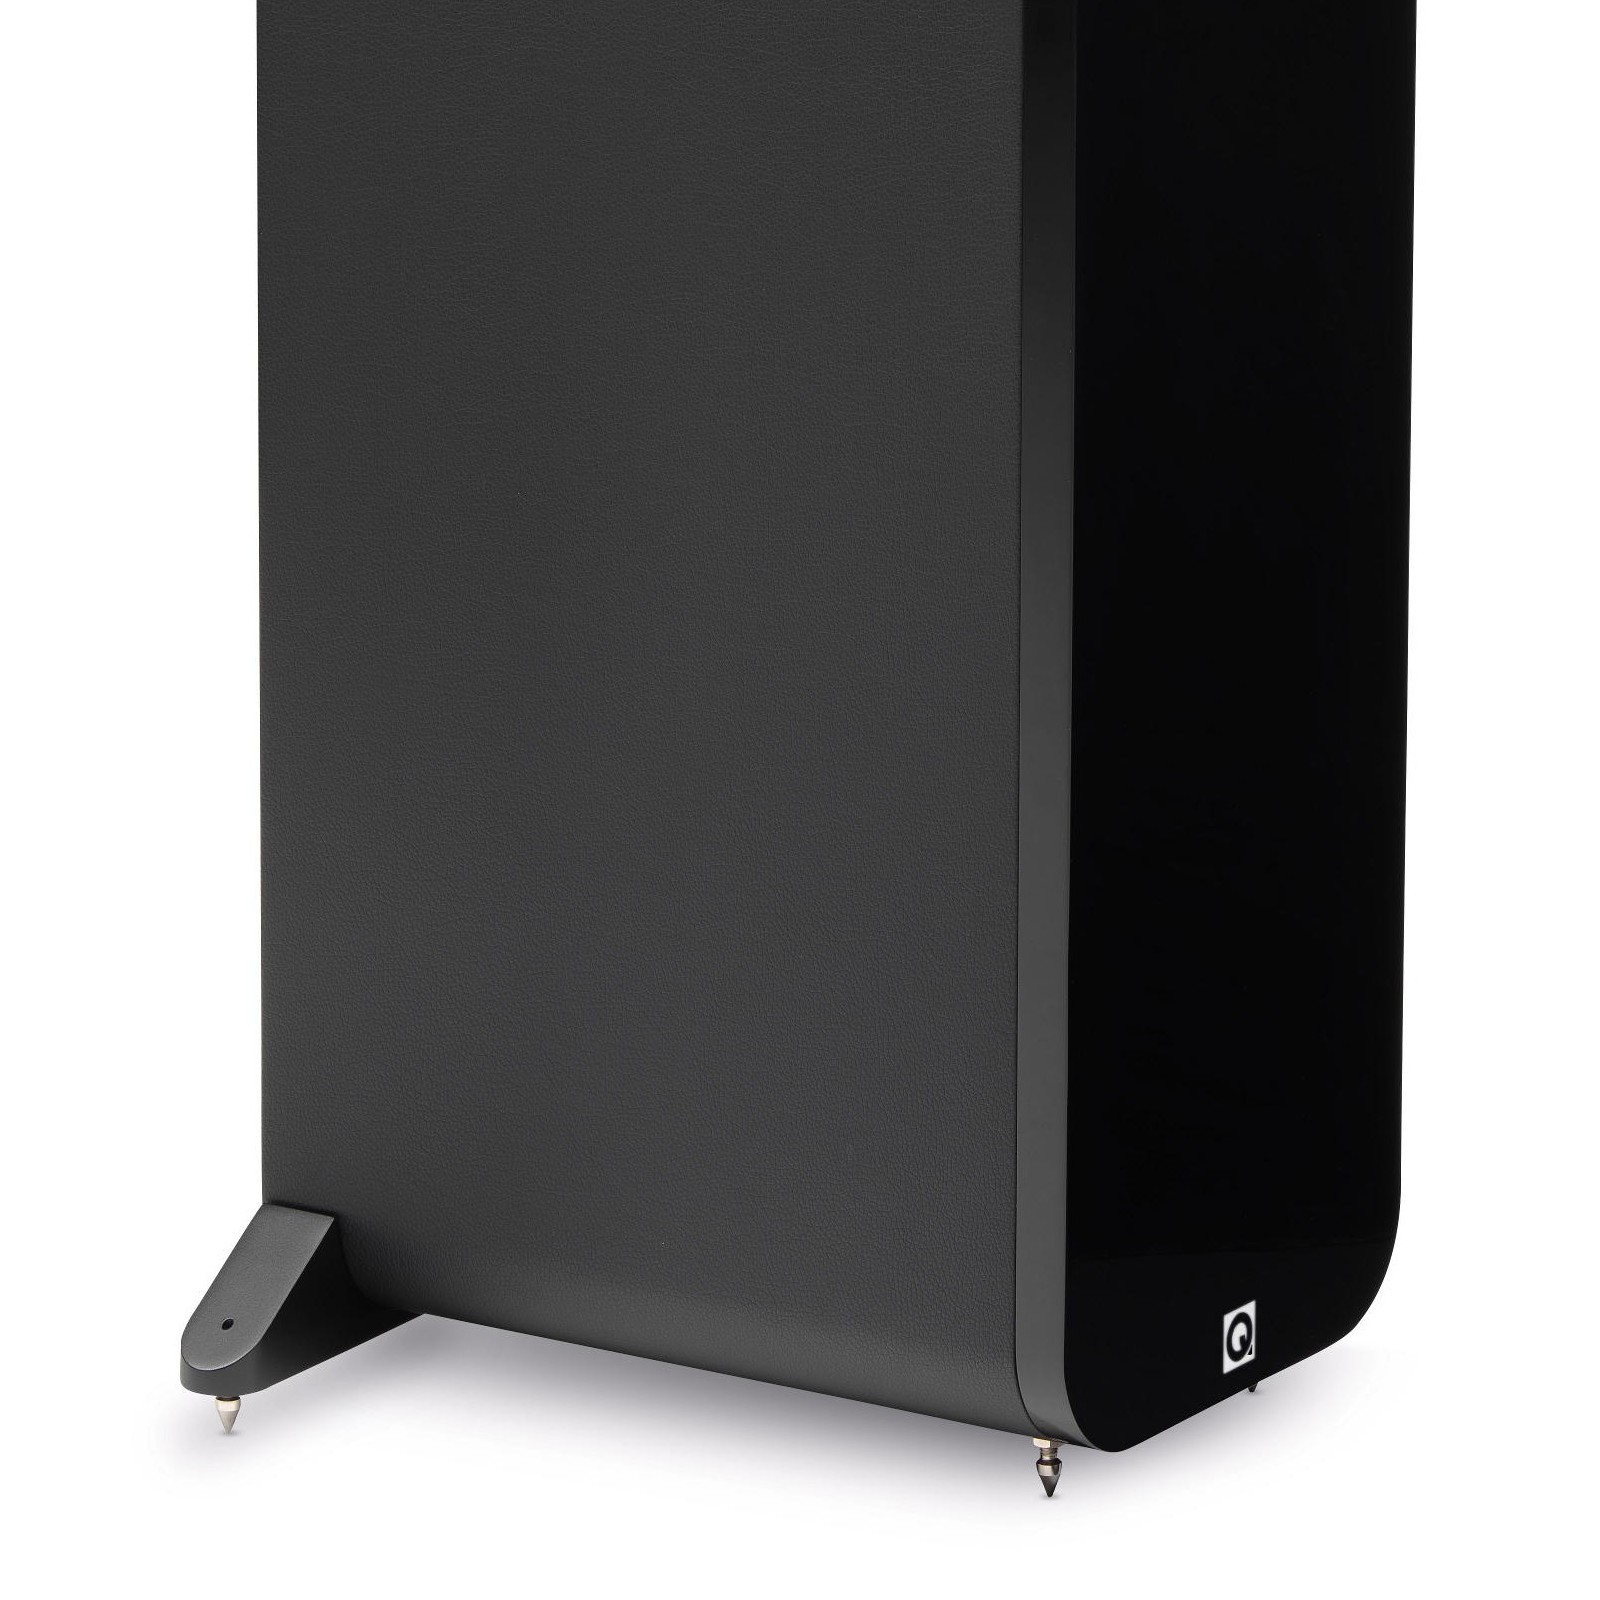 Q Acoustics 3050 speakers sound awesome